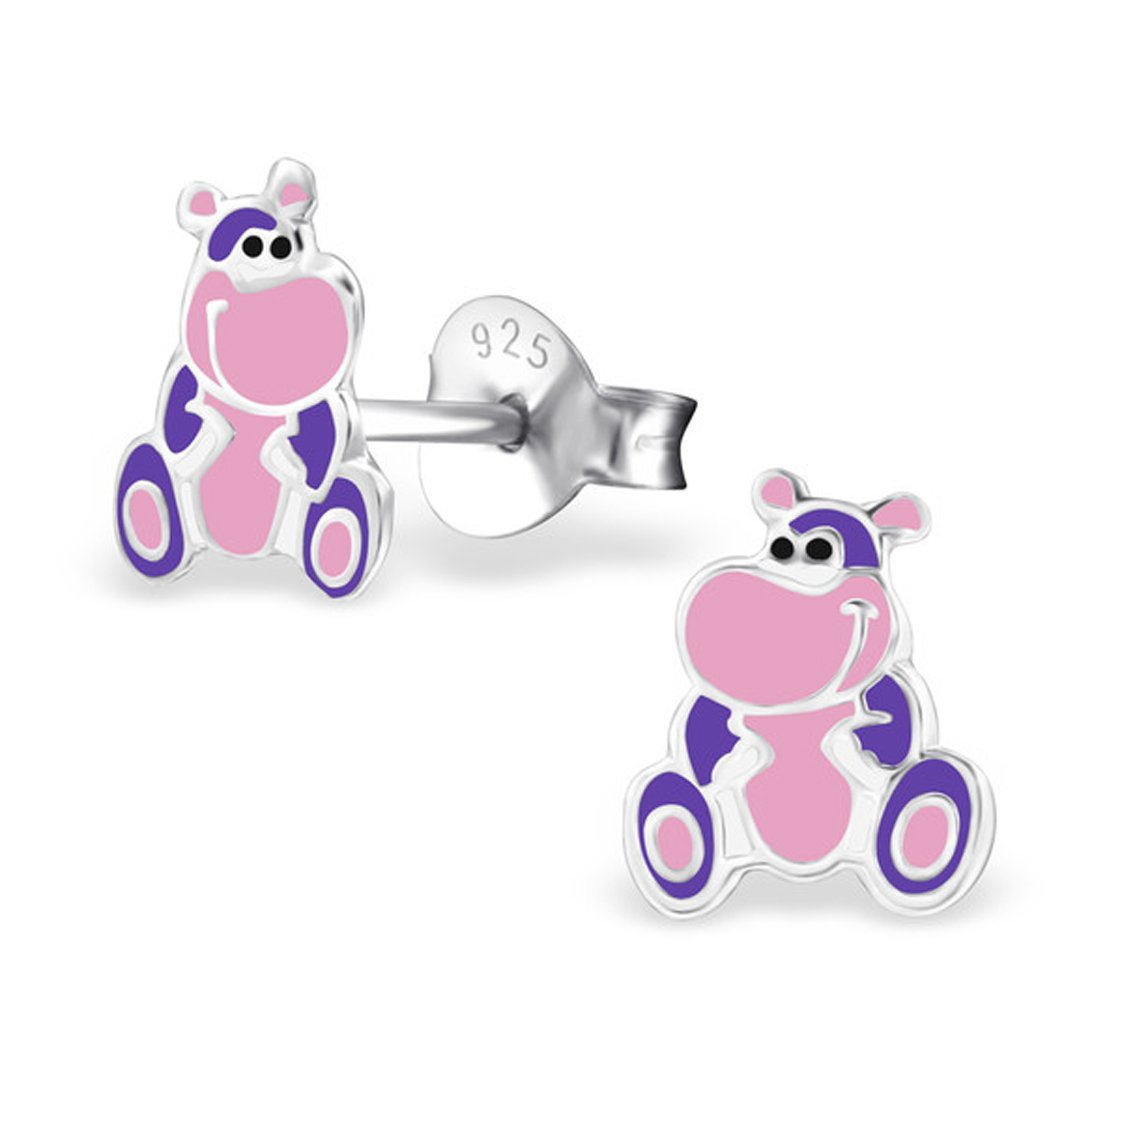 Cute Hippopotamus Studs Earrings Sterling Silver 925 Girls Colorful (E26822) (26822)